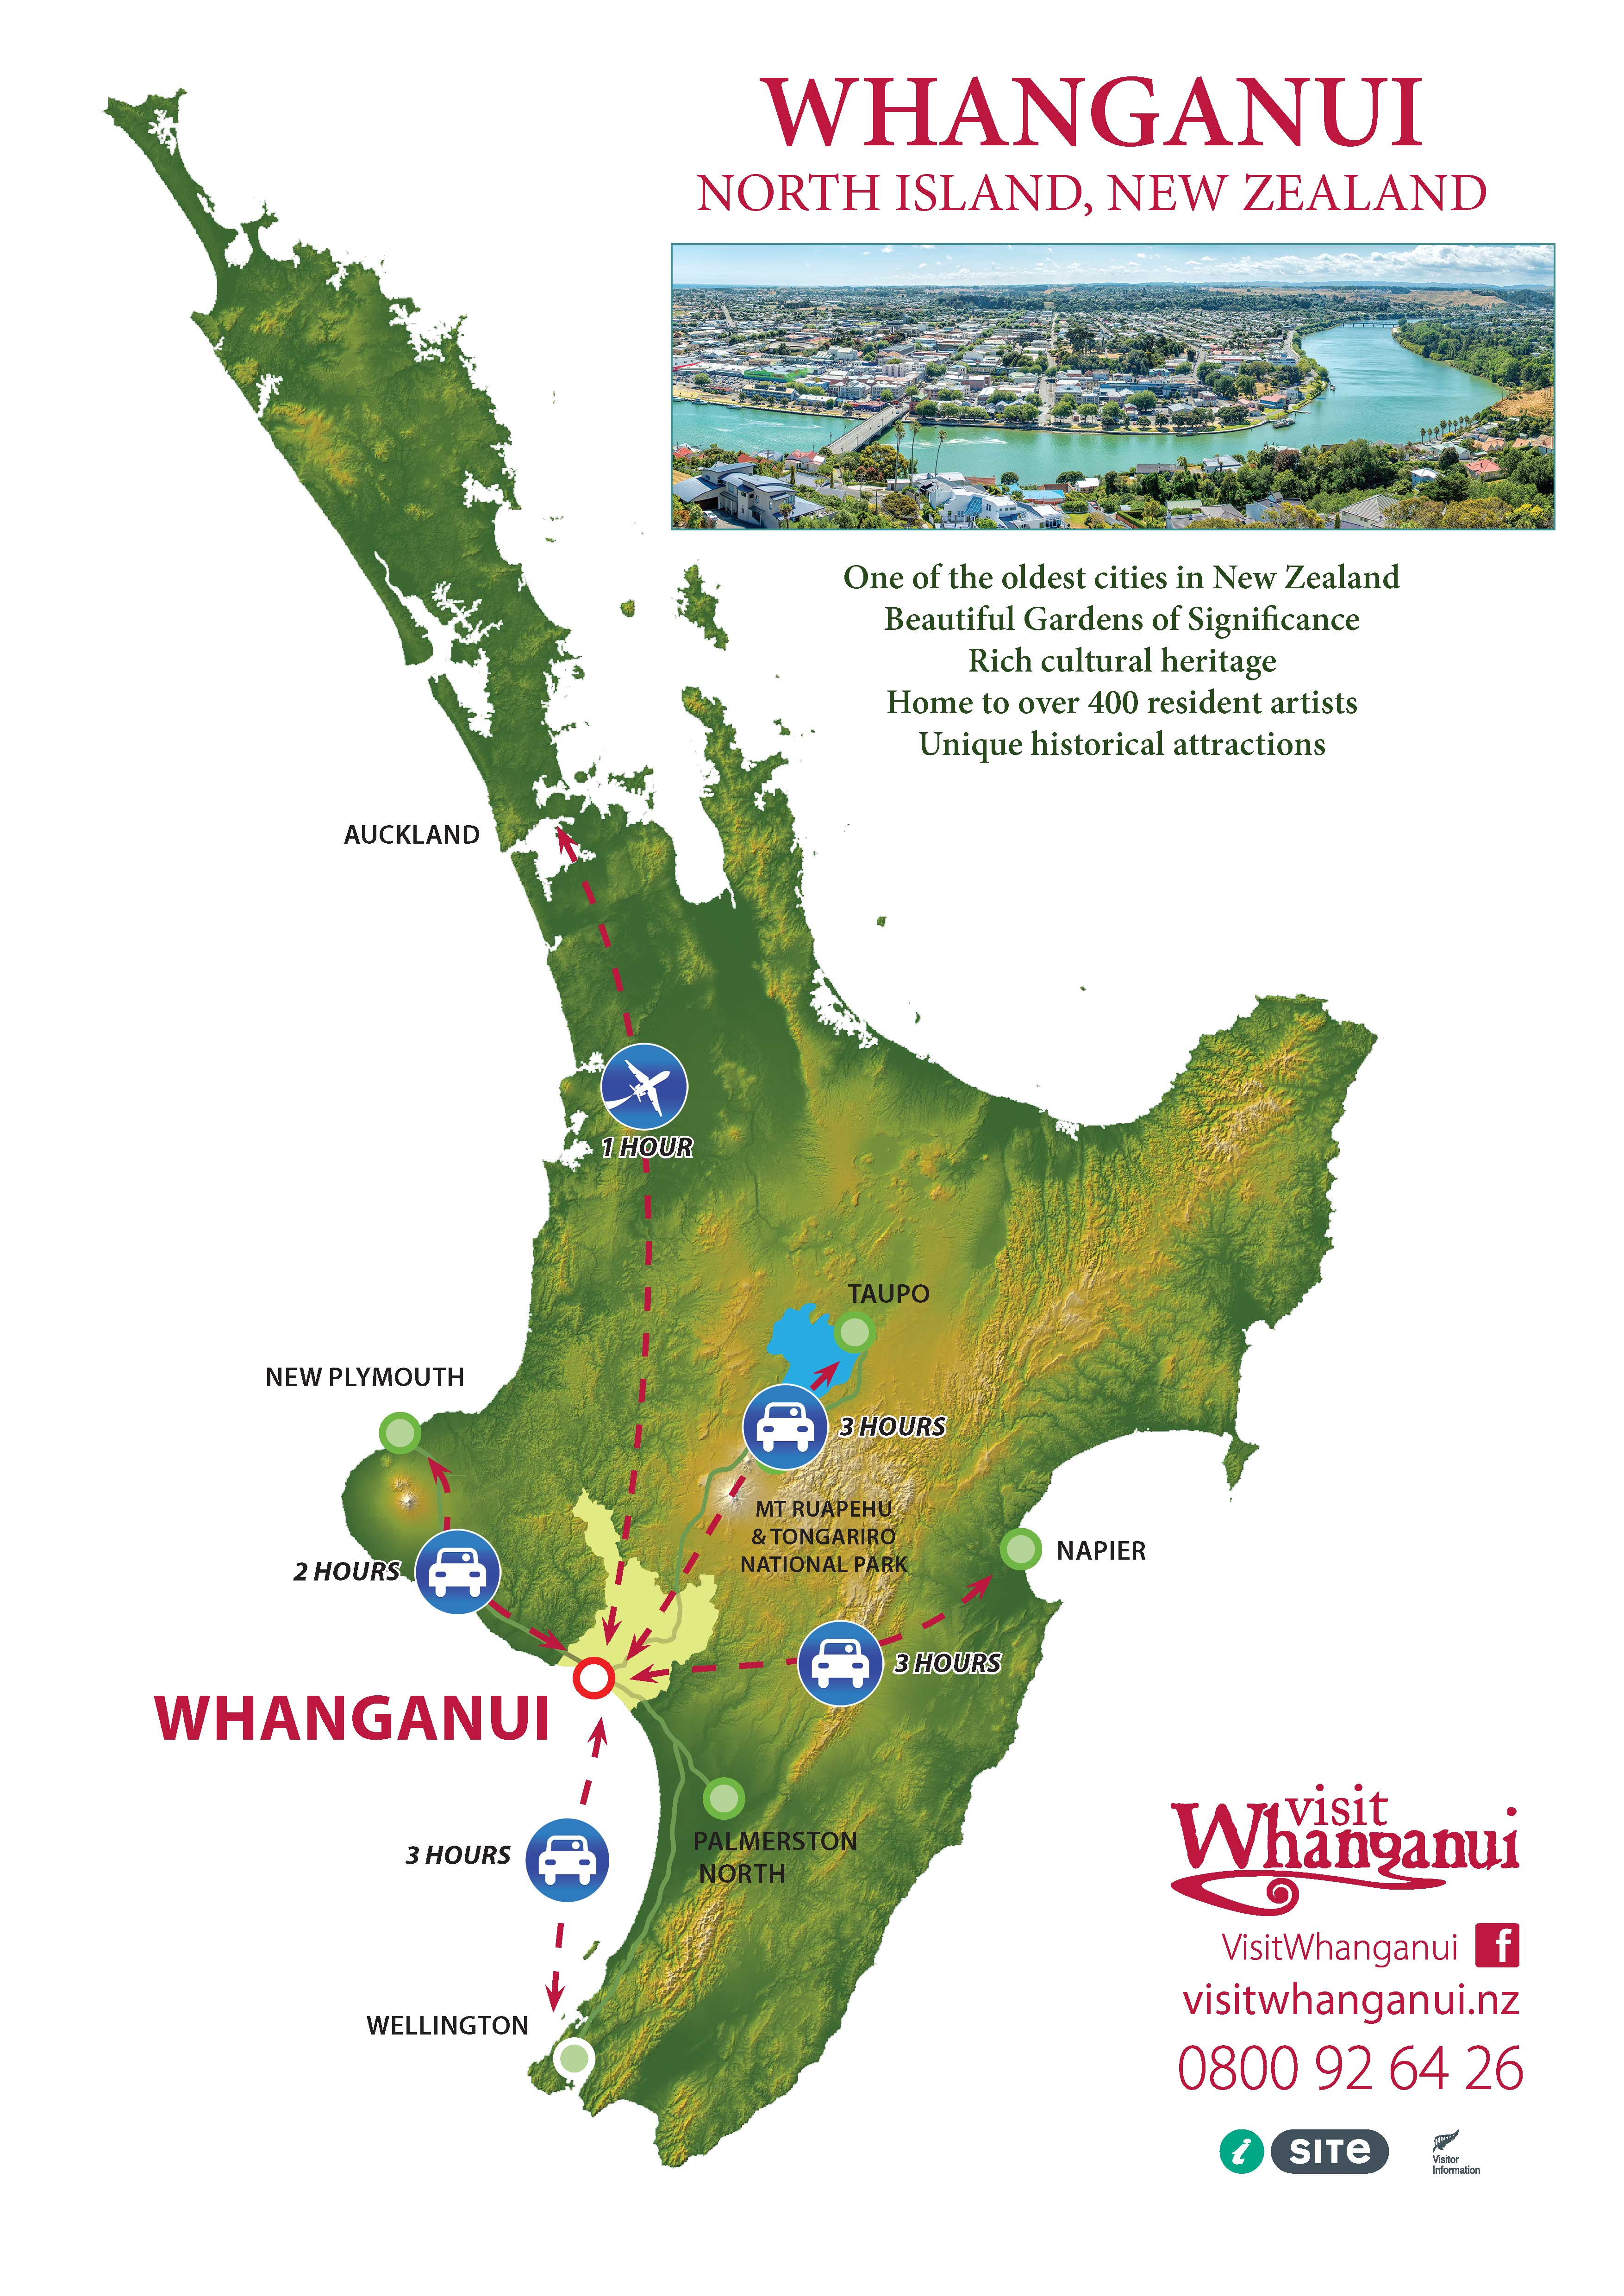 How To Get To Whanganui New Zealand